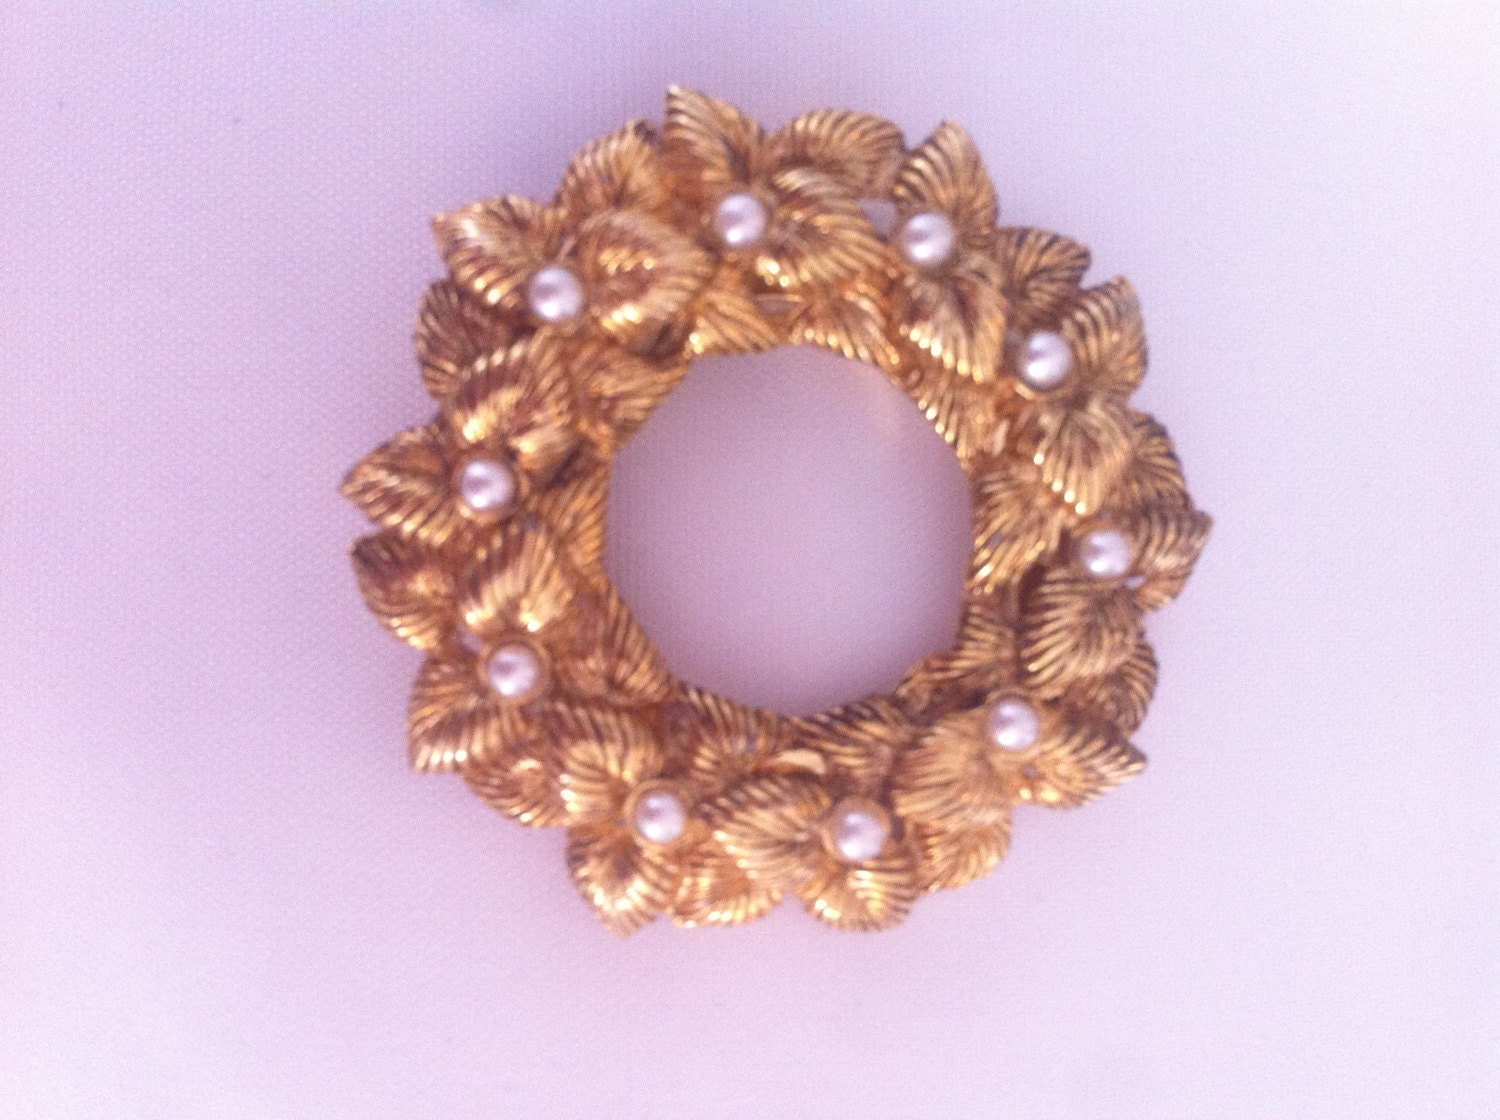 gold tone and pearl wreath 50s antique vintage brooch scarf clip pin retro jewellery jewelry